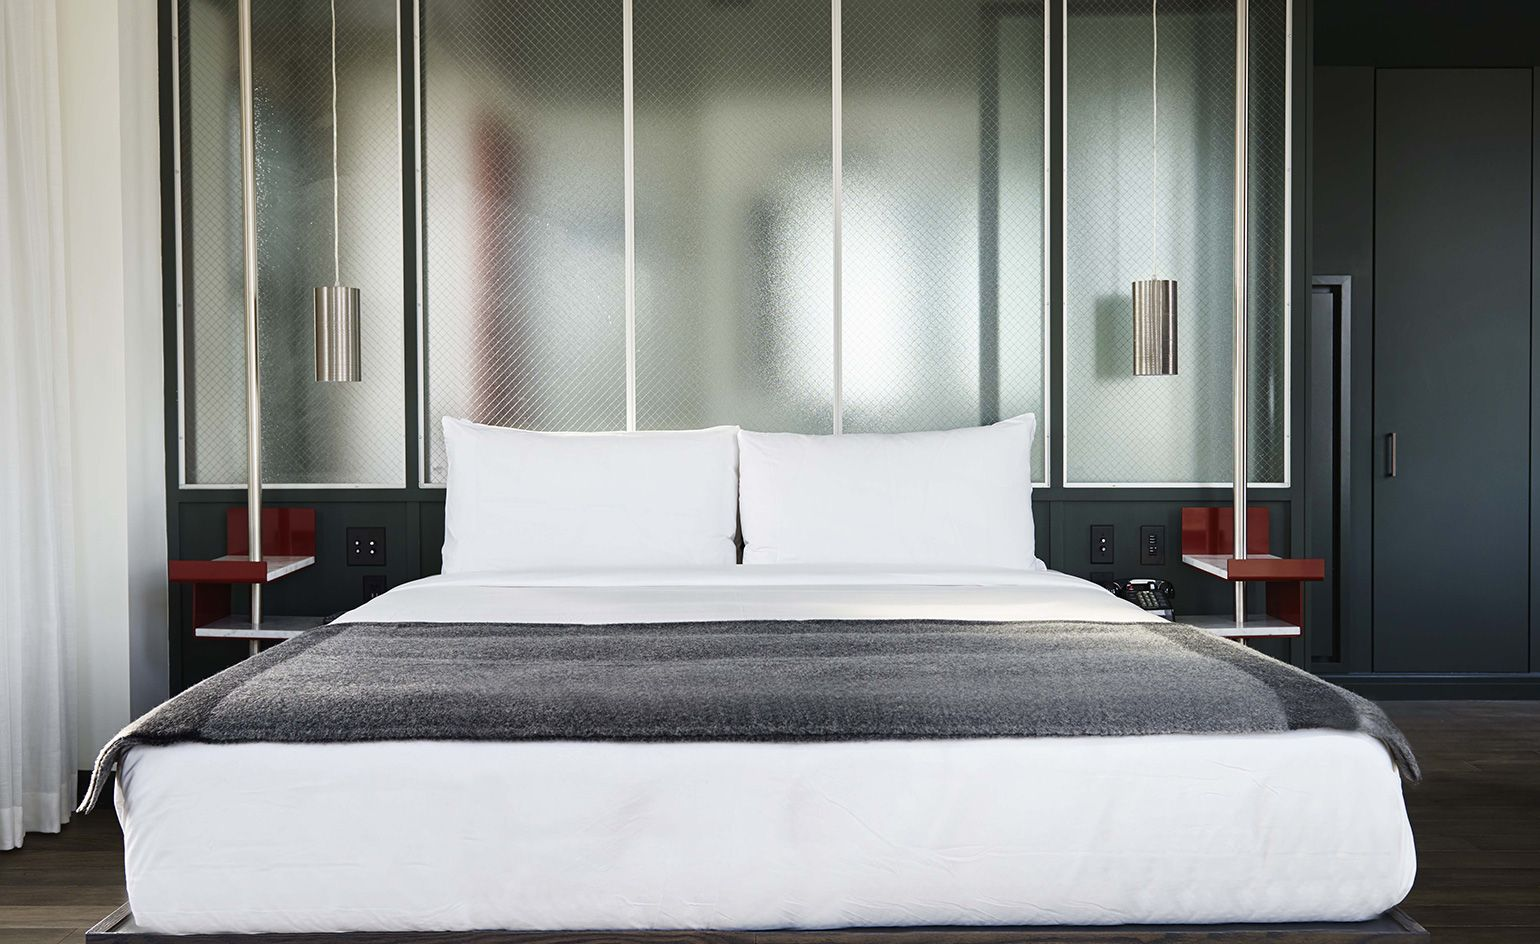 dual aspect sister hotels in chicago are proving multidirectional